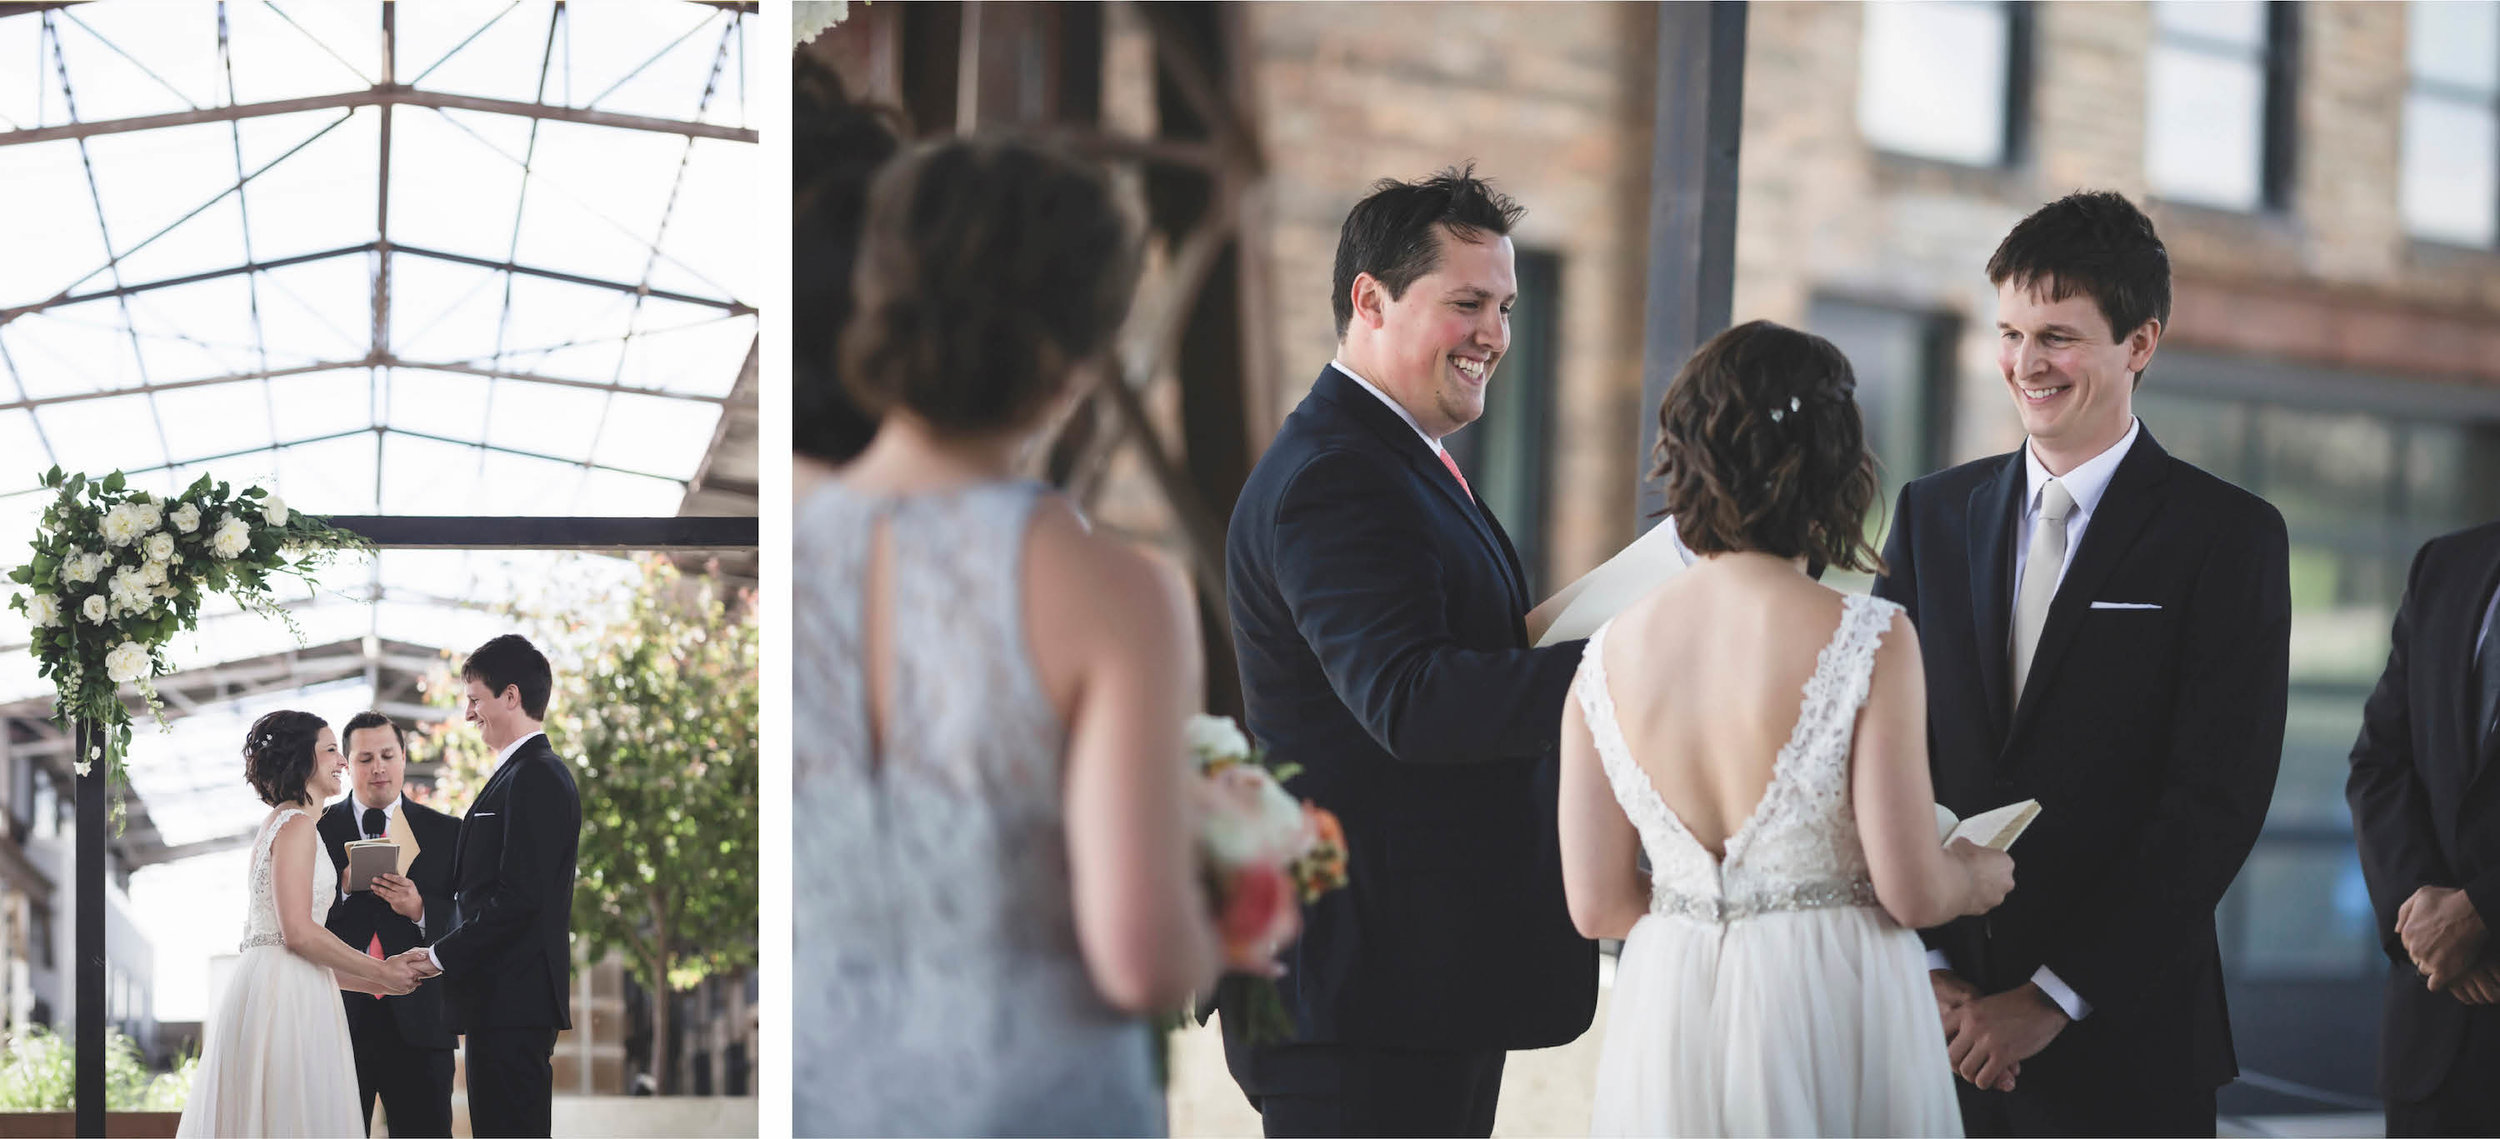 75 bauhaus brewery minneapolis wedding photographer.jpg